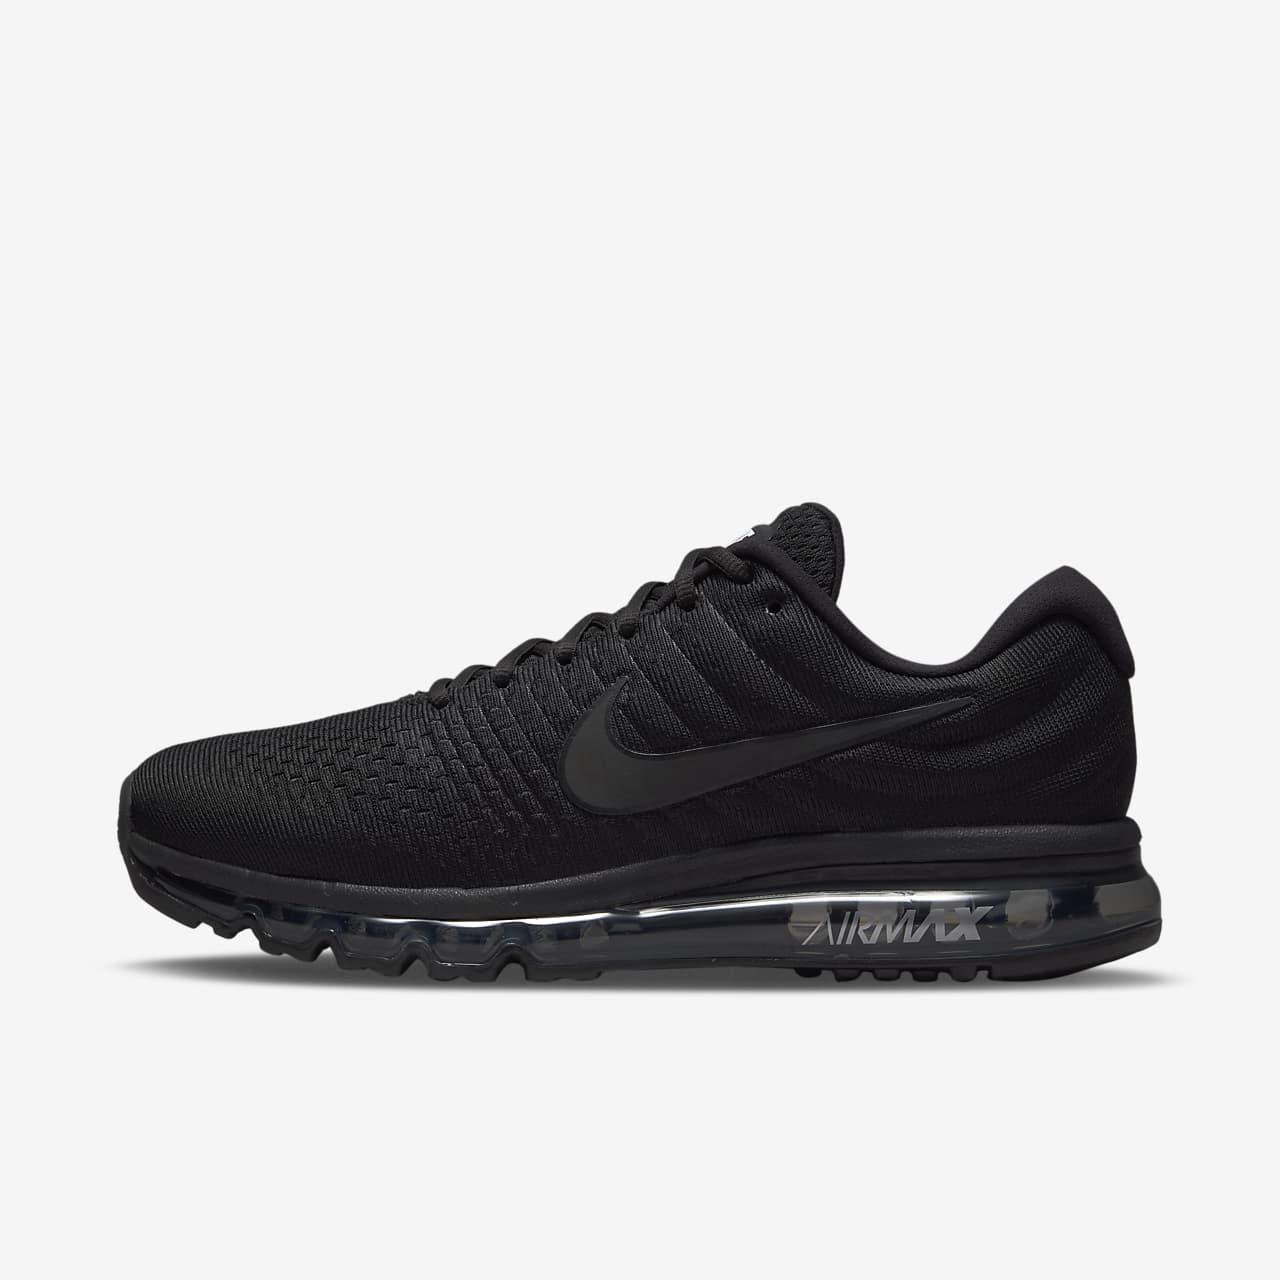 outlet store 4bdc4 d8c8a ... Chaussure Nike Air Max 2017 pour Homme